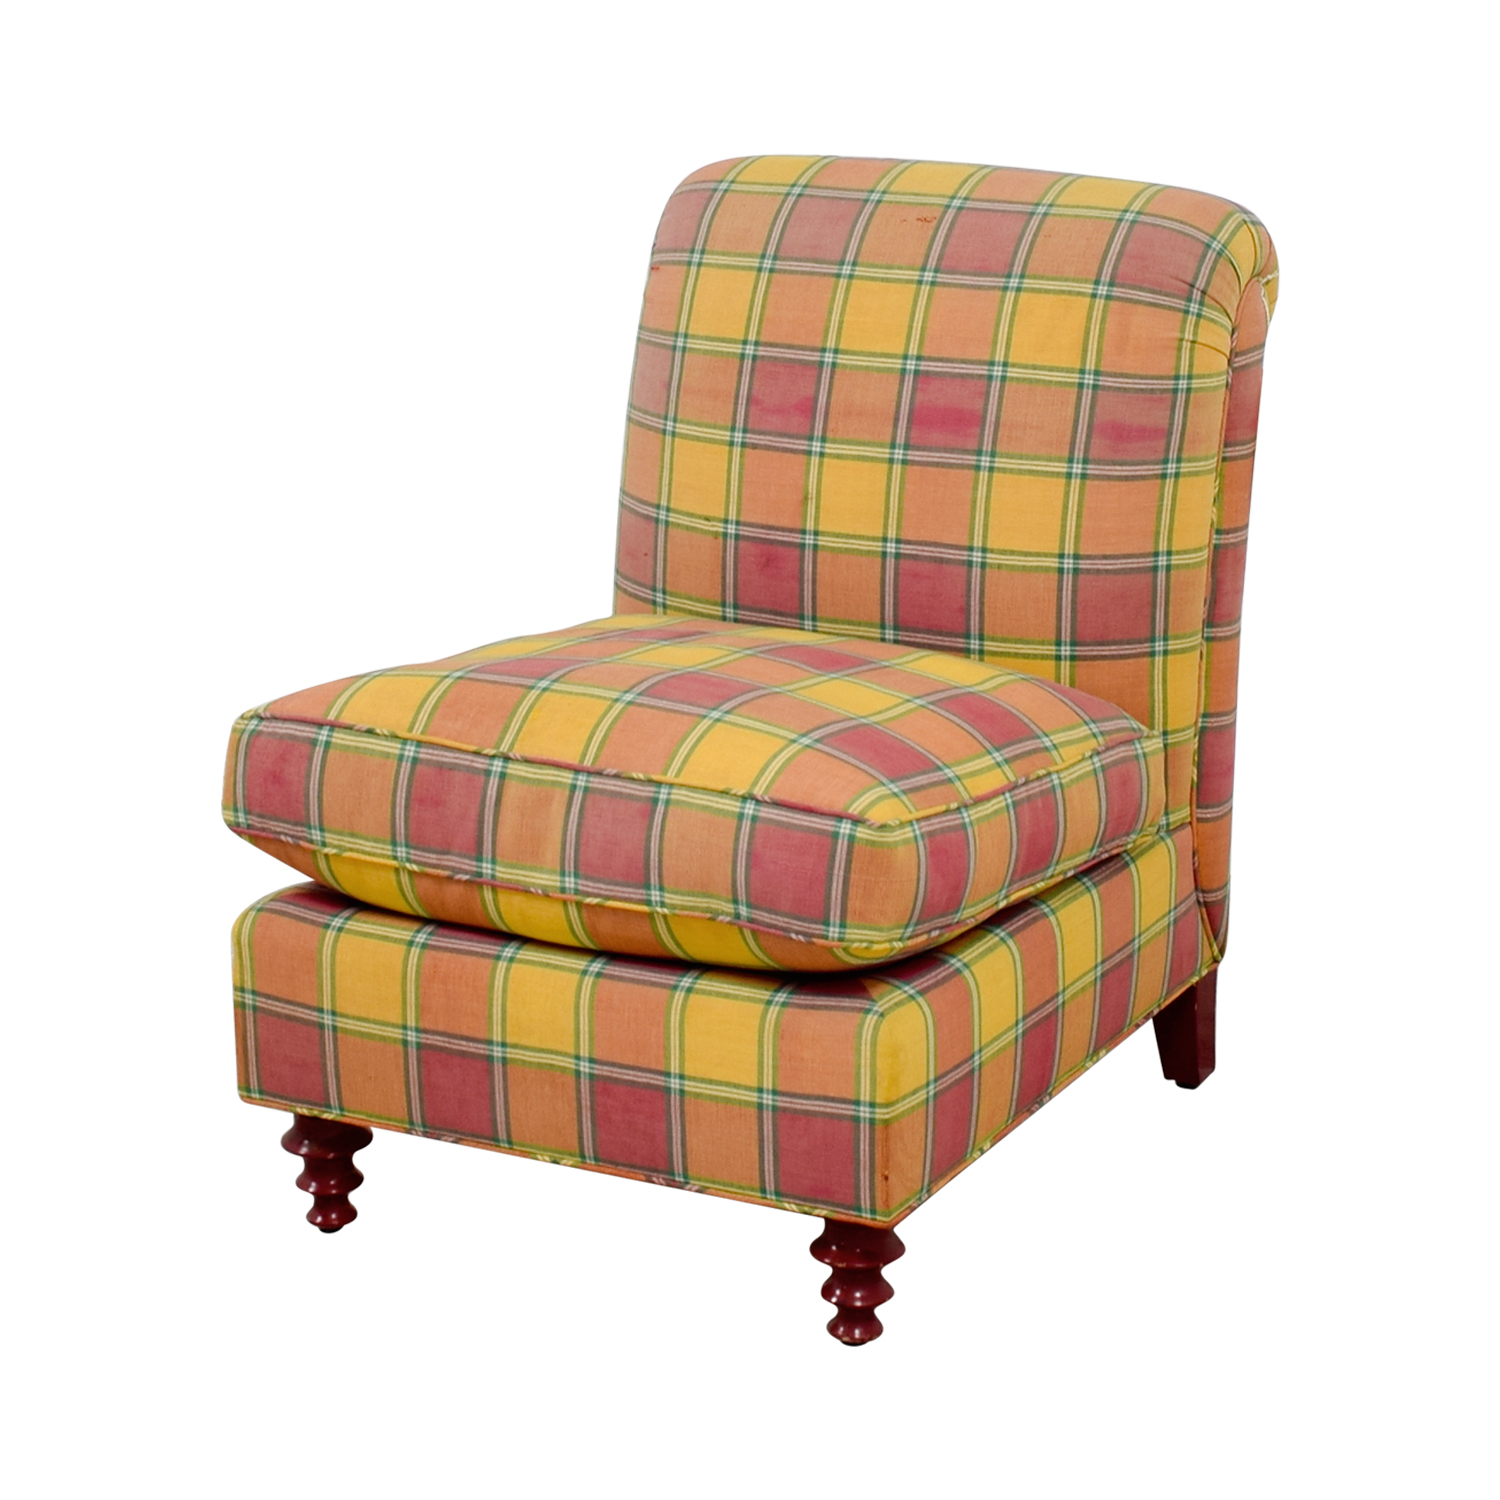 90 off furniture masters furniture masters red and for Furniture 90 off